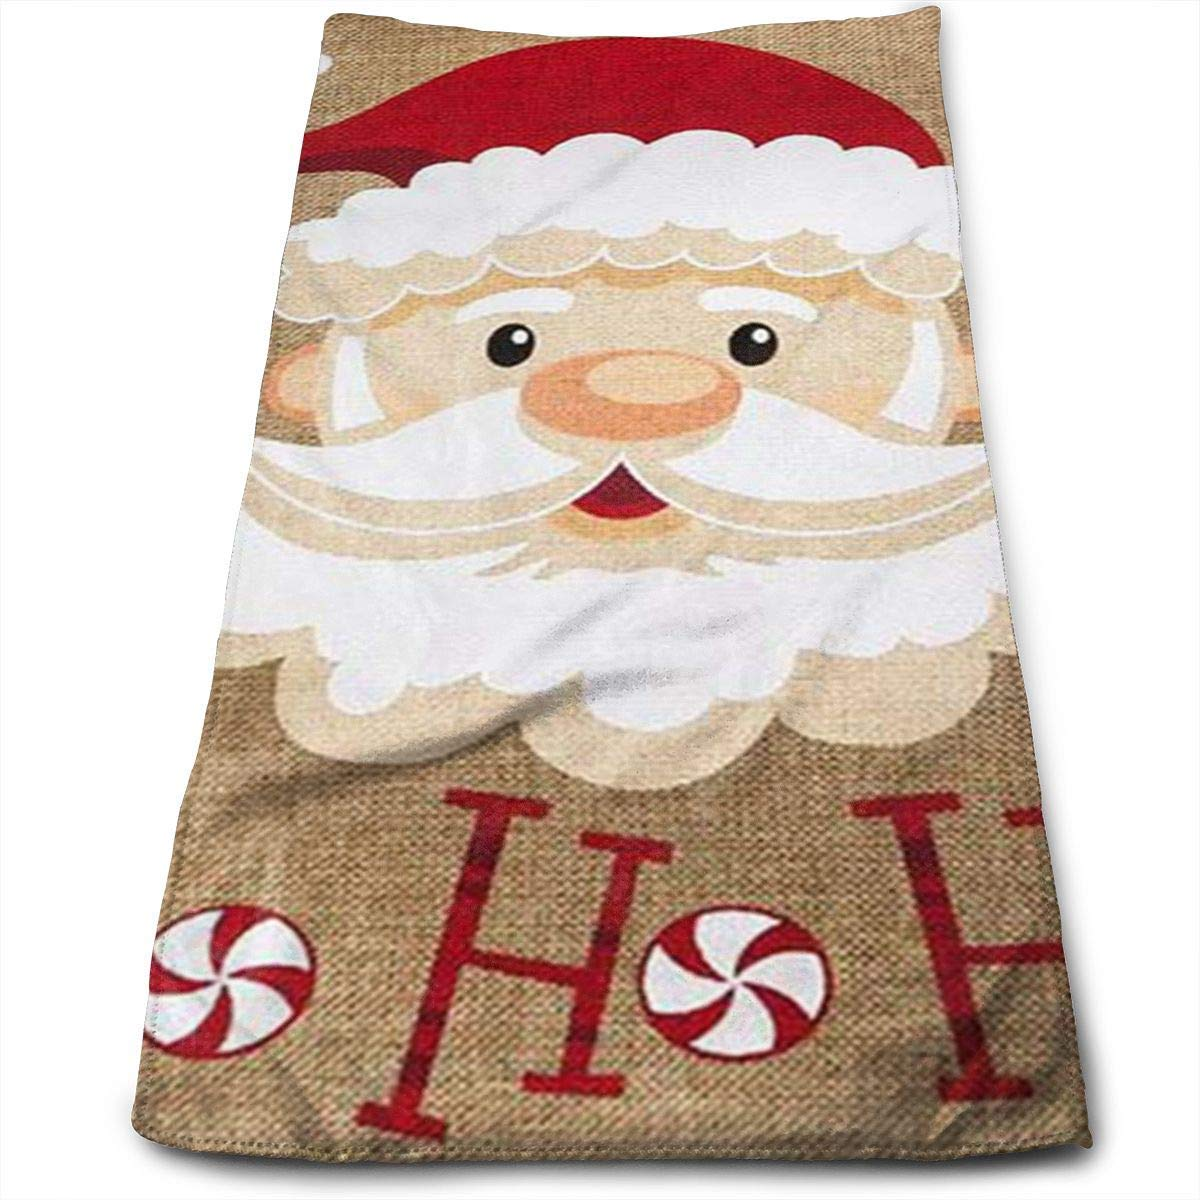 ERCGY Peppermint Santa Happy Polyester Bath Towels for Hotel-Spa-Pool-Gym-Bathroom - Super Soft Absorbent Ringspun Towels